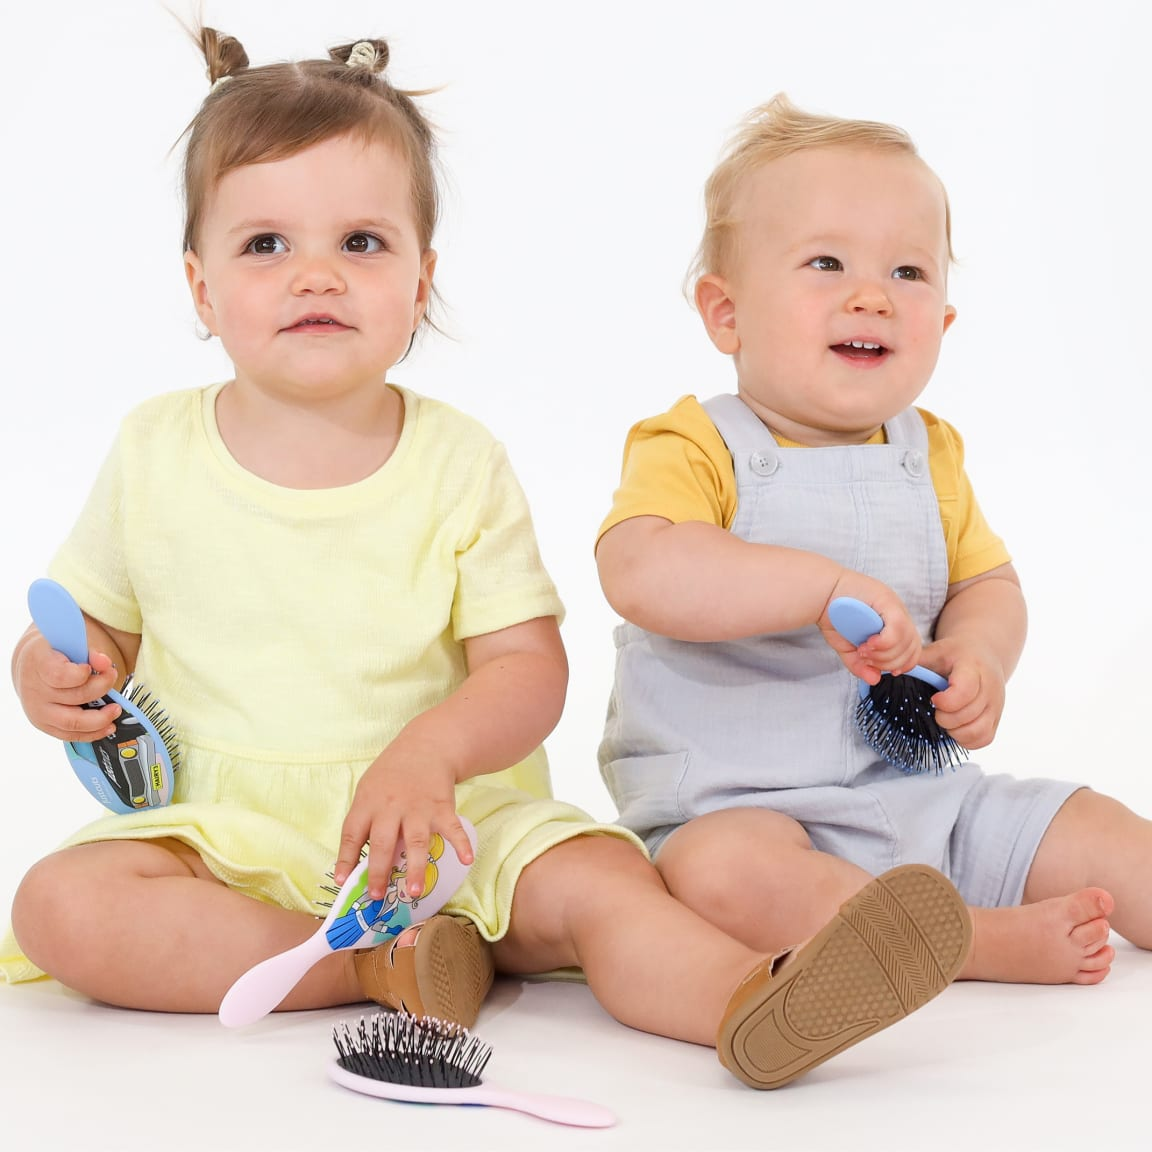 Just Cuts: Little brushes for little hands